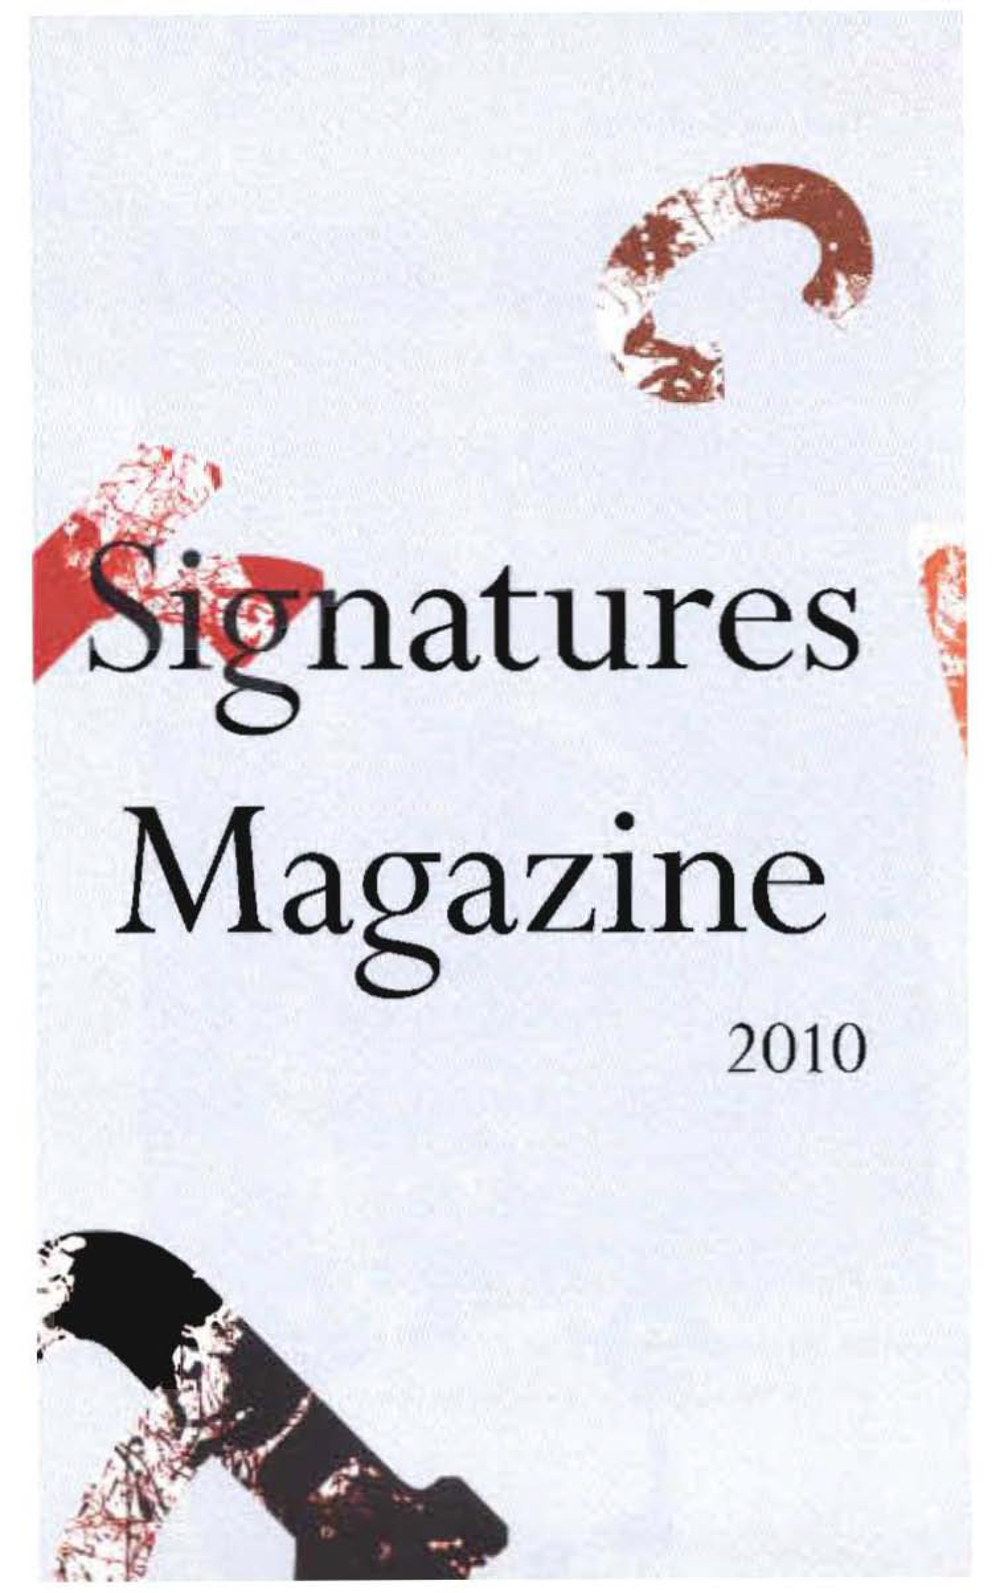 SignaturesBook2010-3.jpg